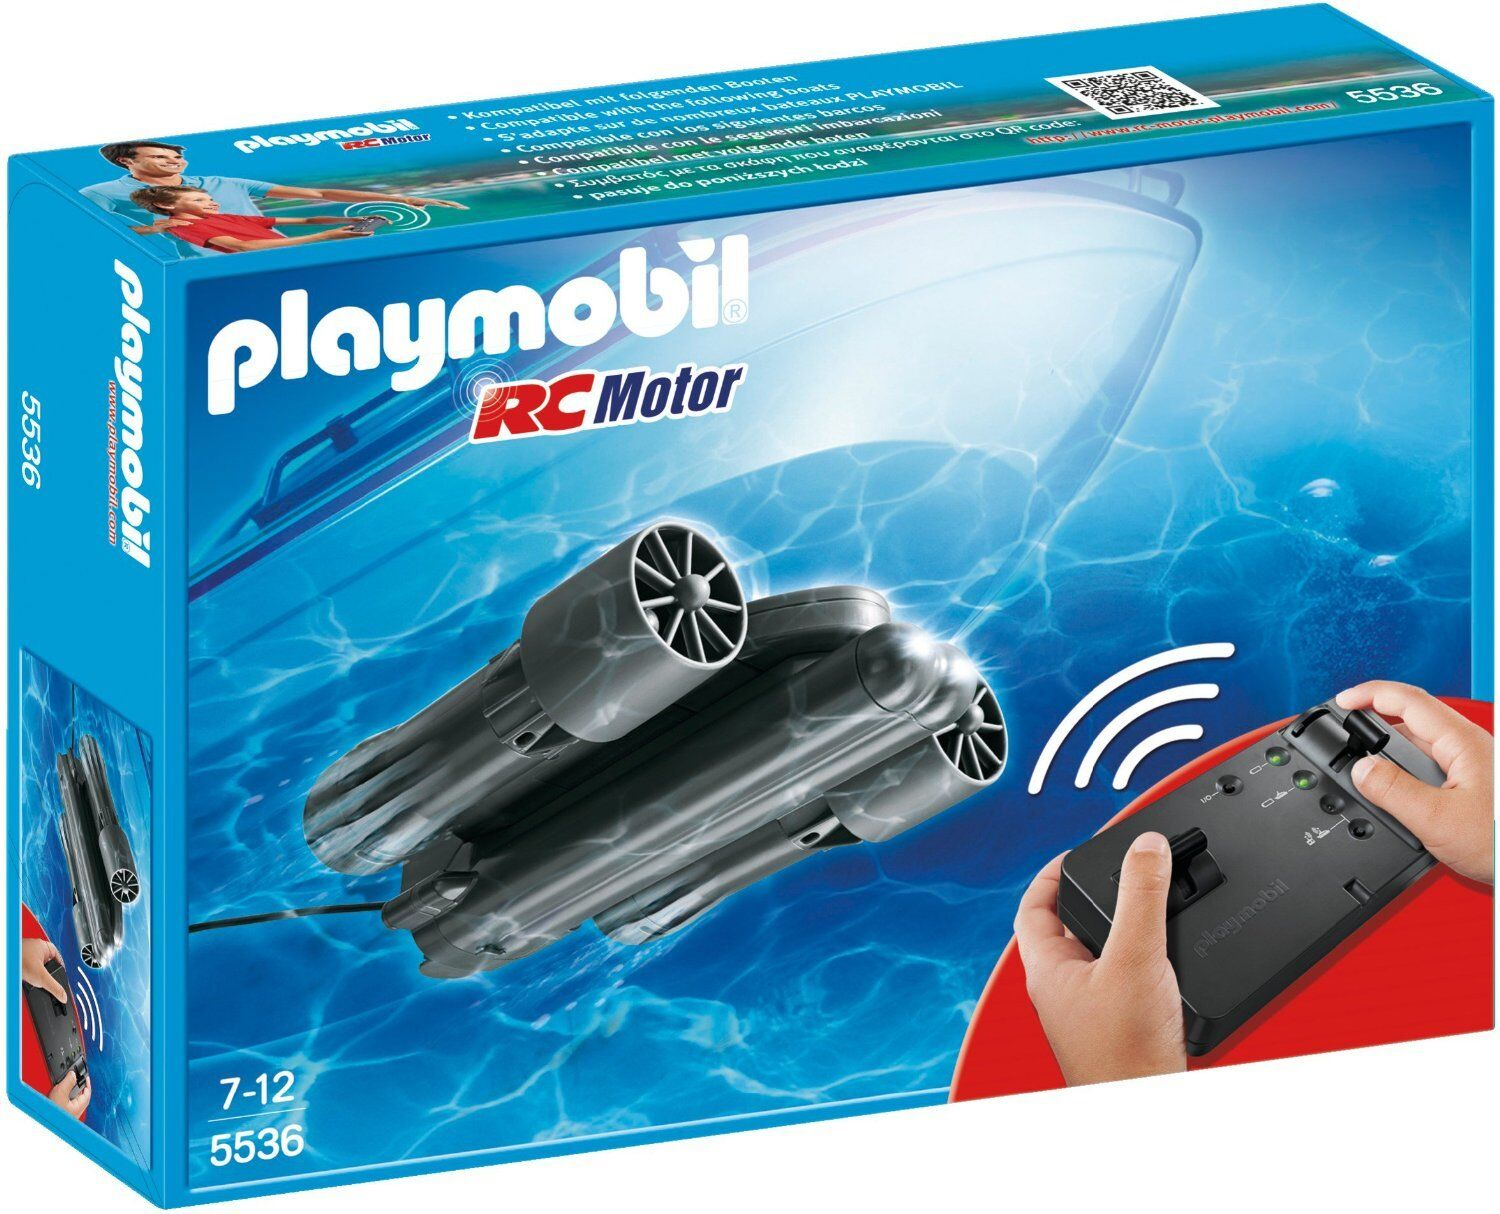 Playmobil 5536 Summer Fun RC Underwater Motor BRAND NEW FREE P&P